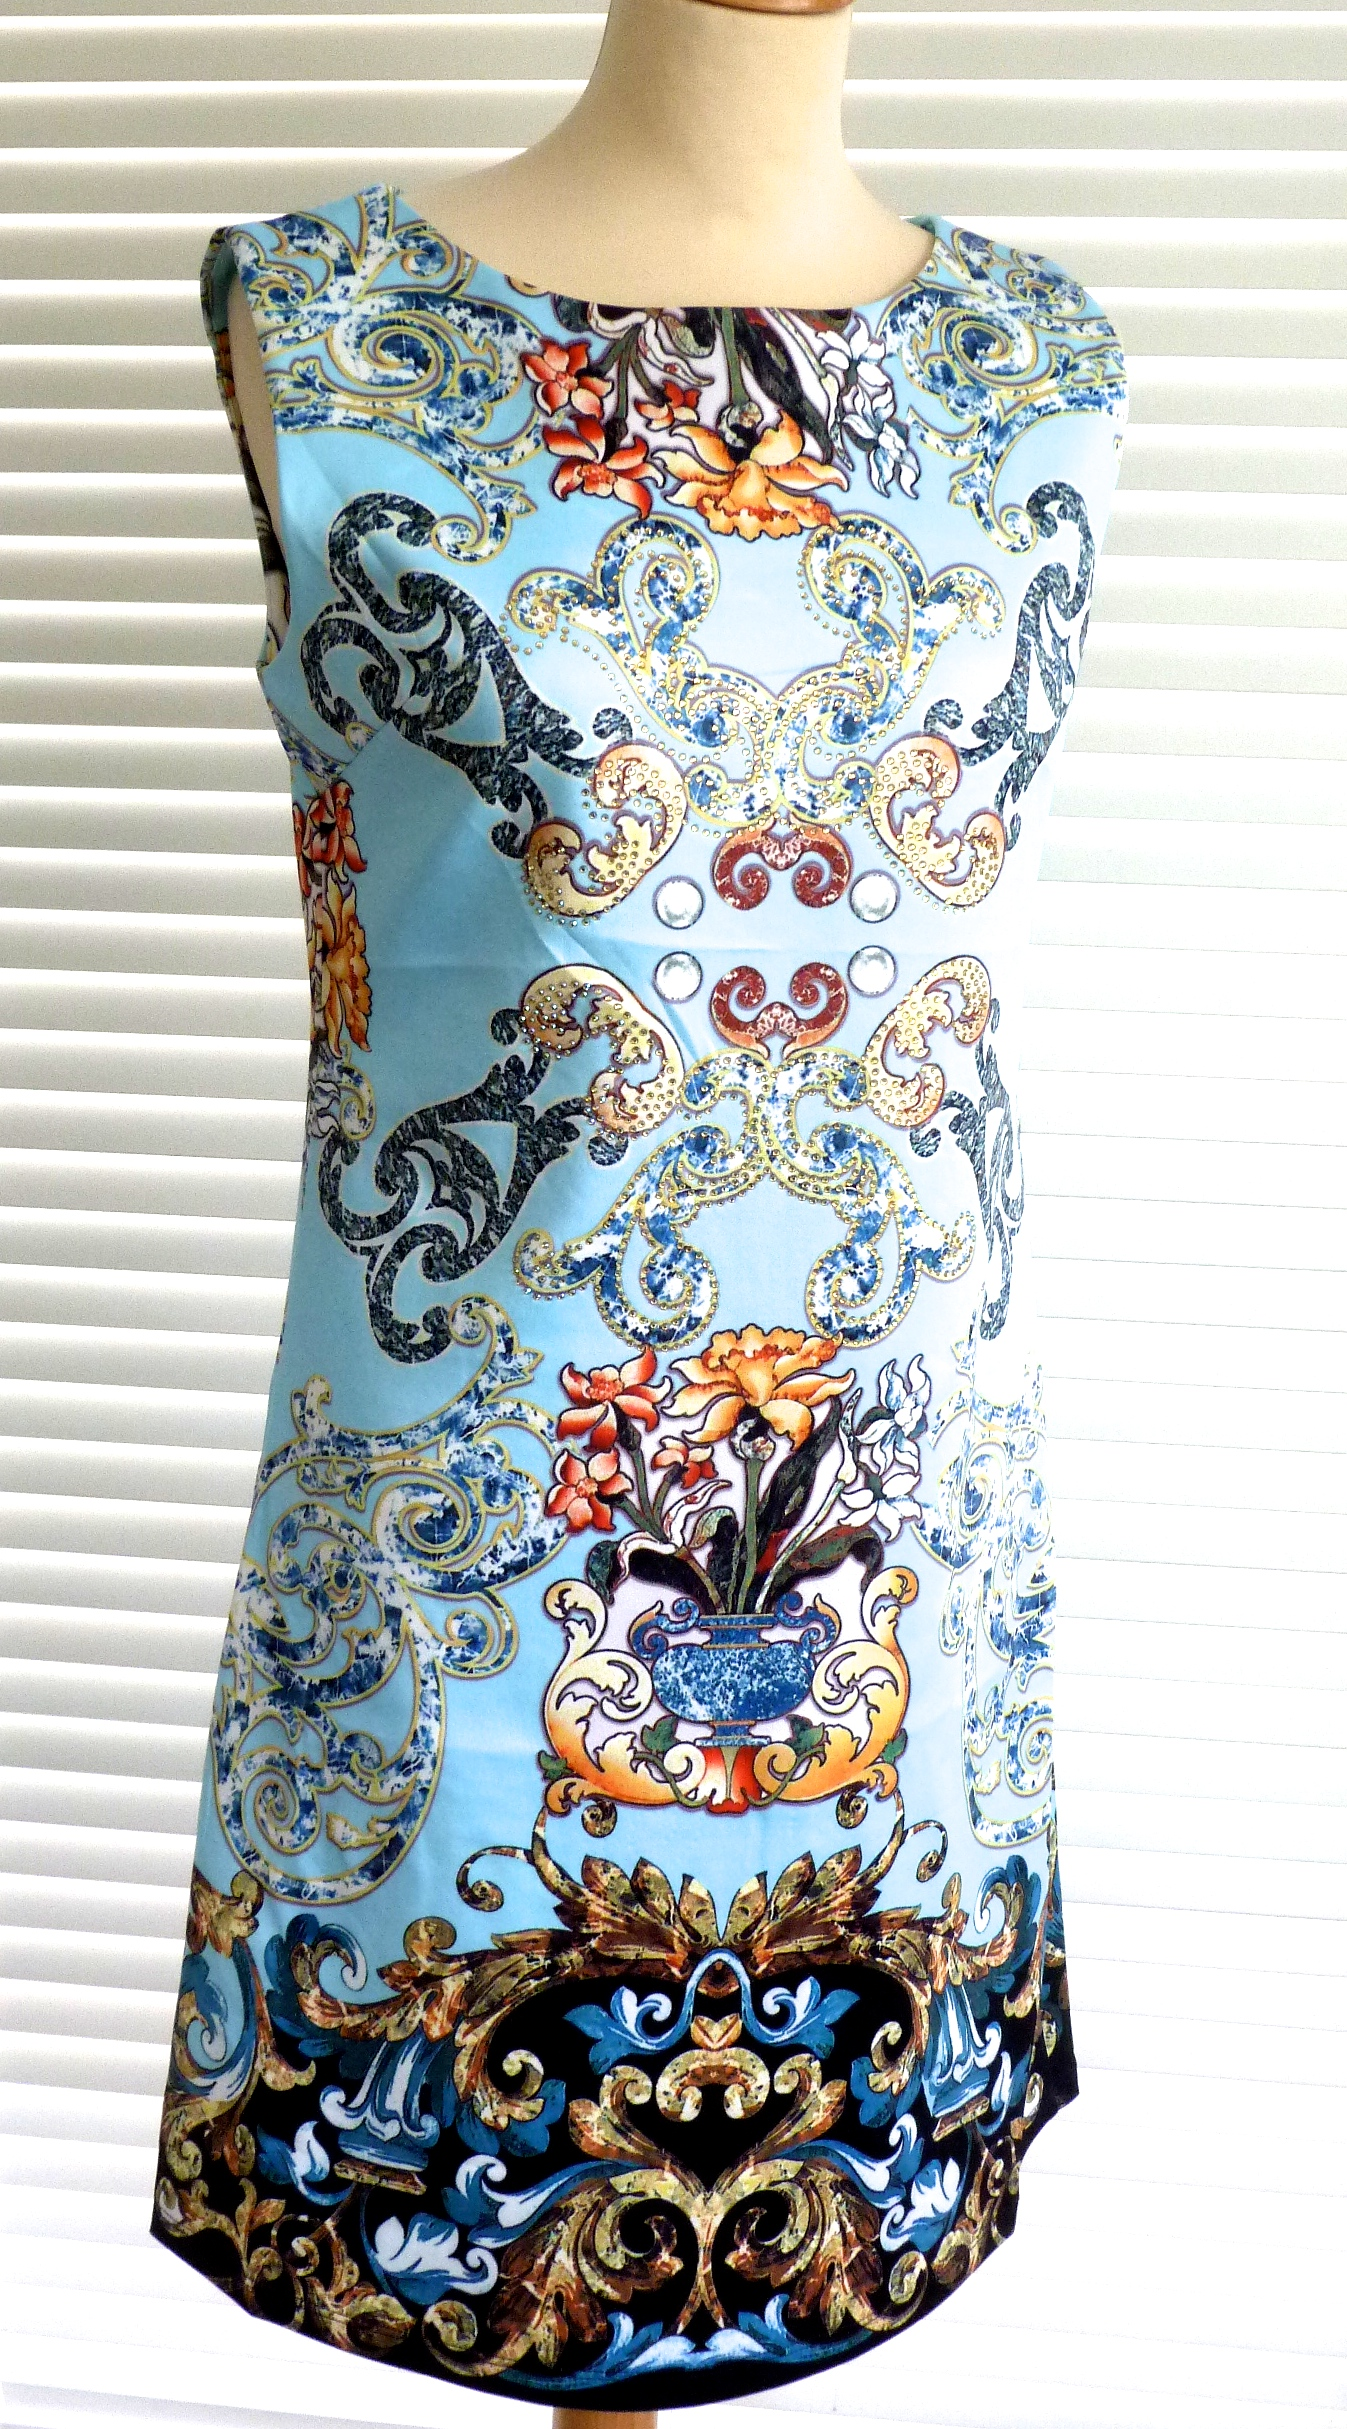 Stunning designer inspired diamante embellished print dress Replica designer clothes uk